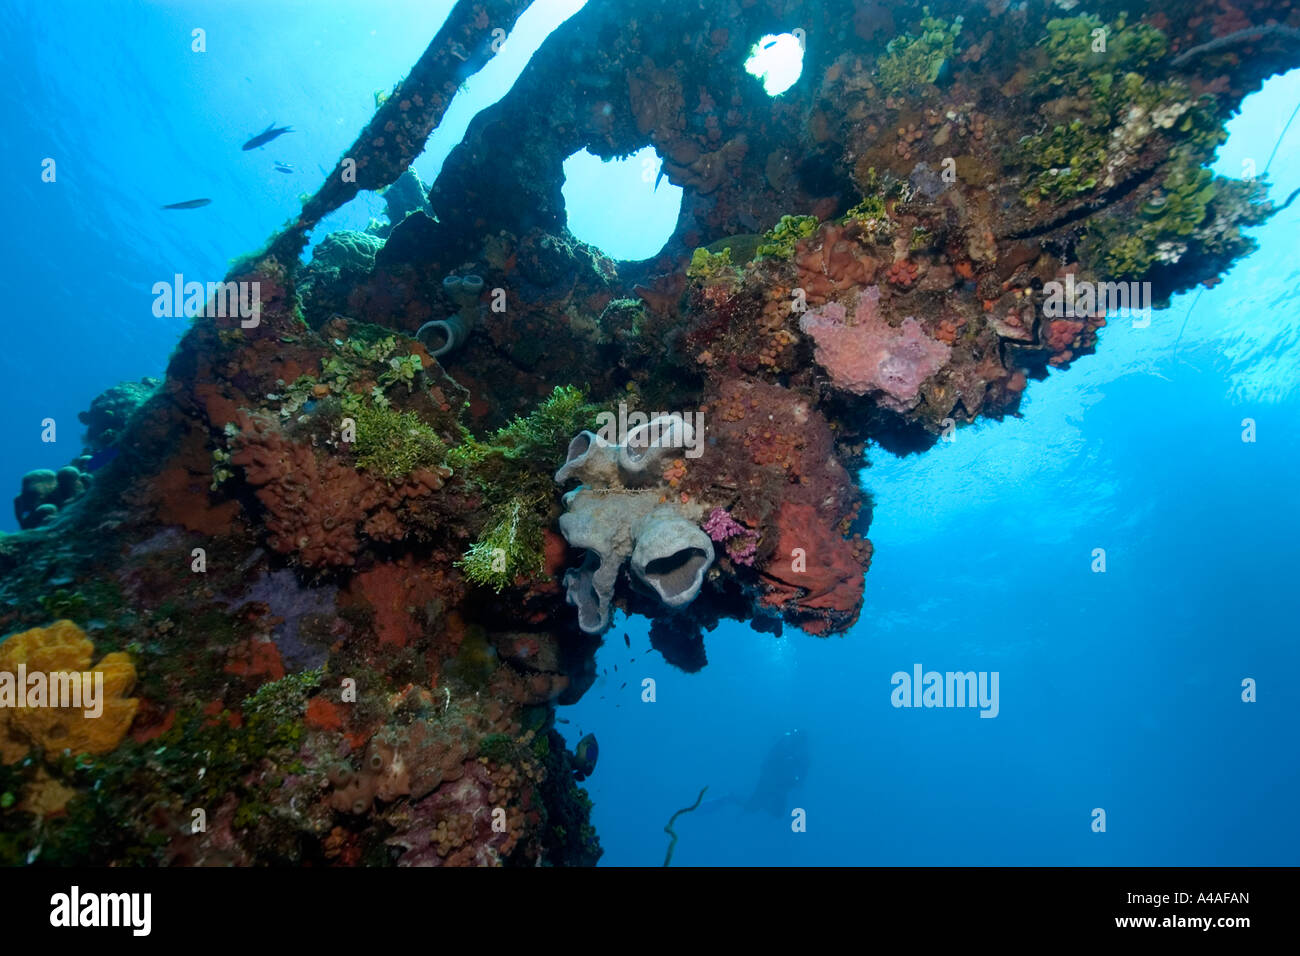 Sponges algae and corals growing over the external structure of the Fujikawa Maru Truk lagoon - Stock Image